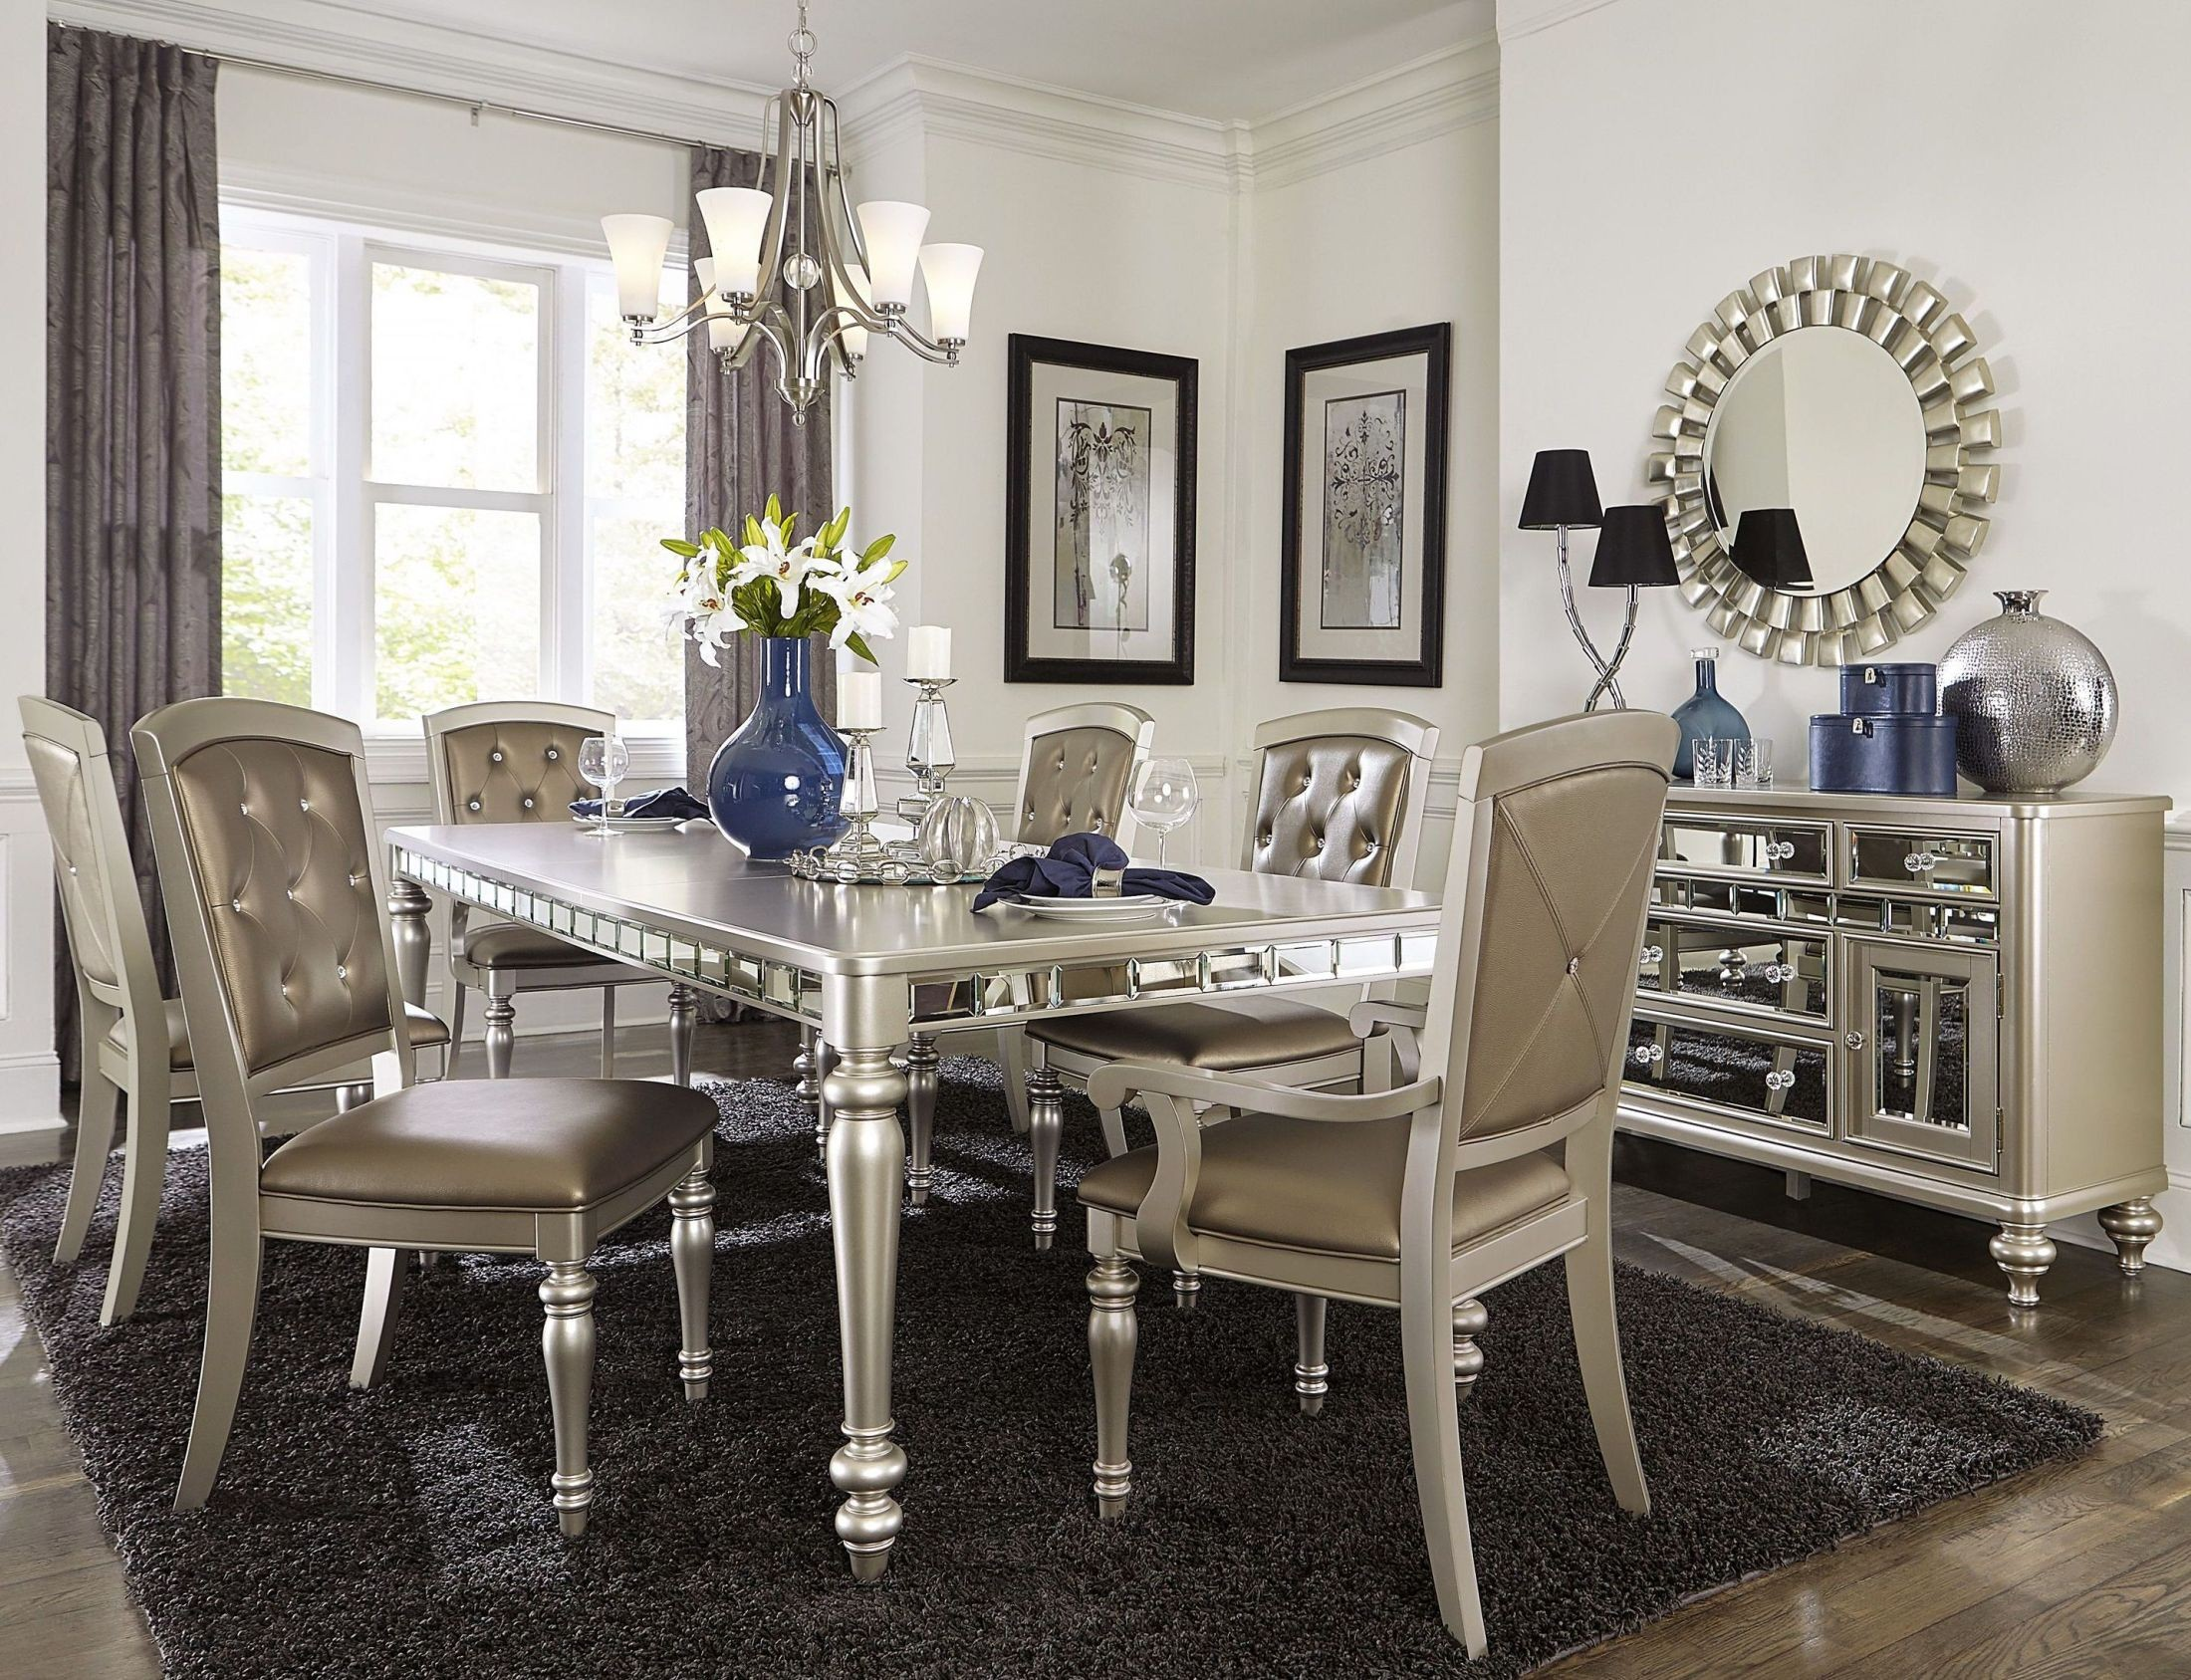 Orsina silver extendable dining room set from homelegance coleman furniture